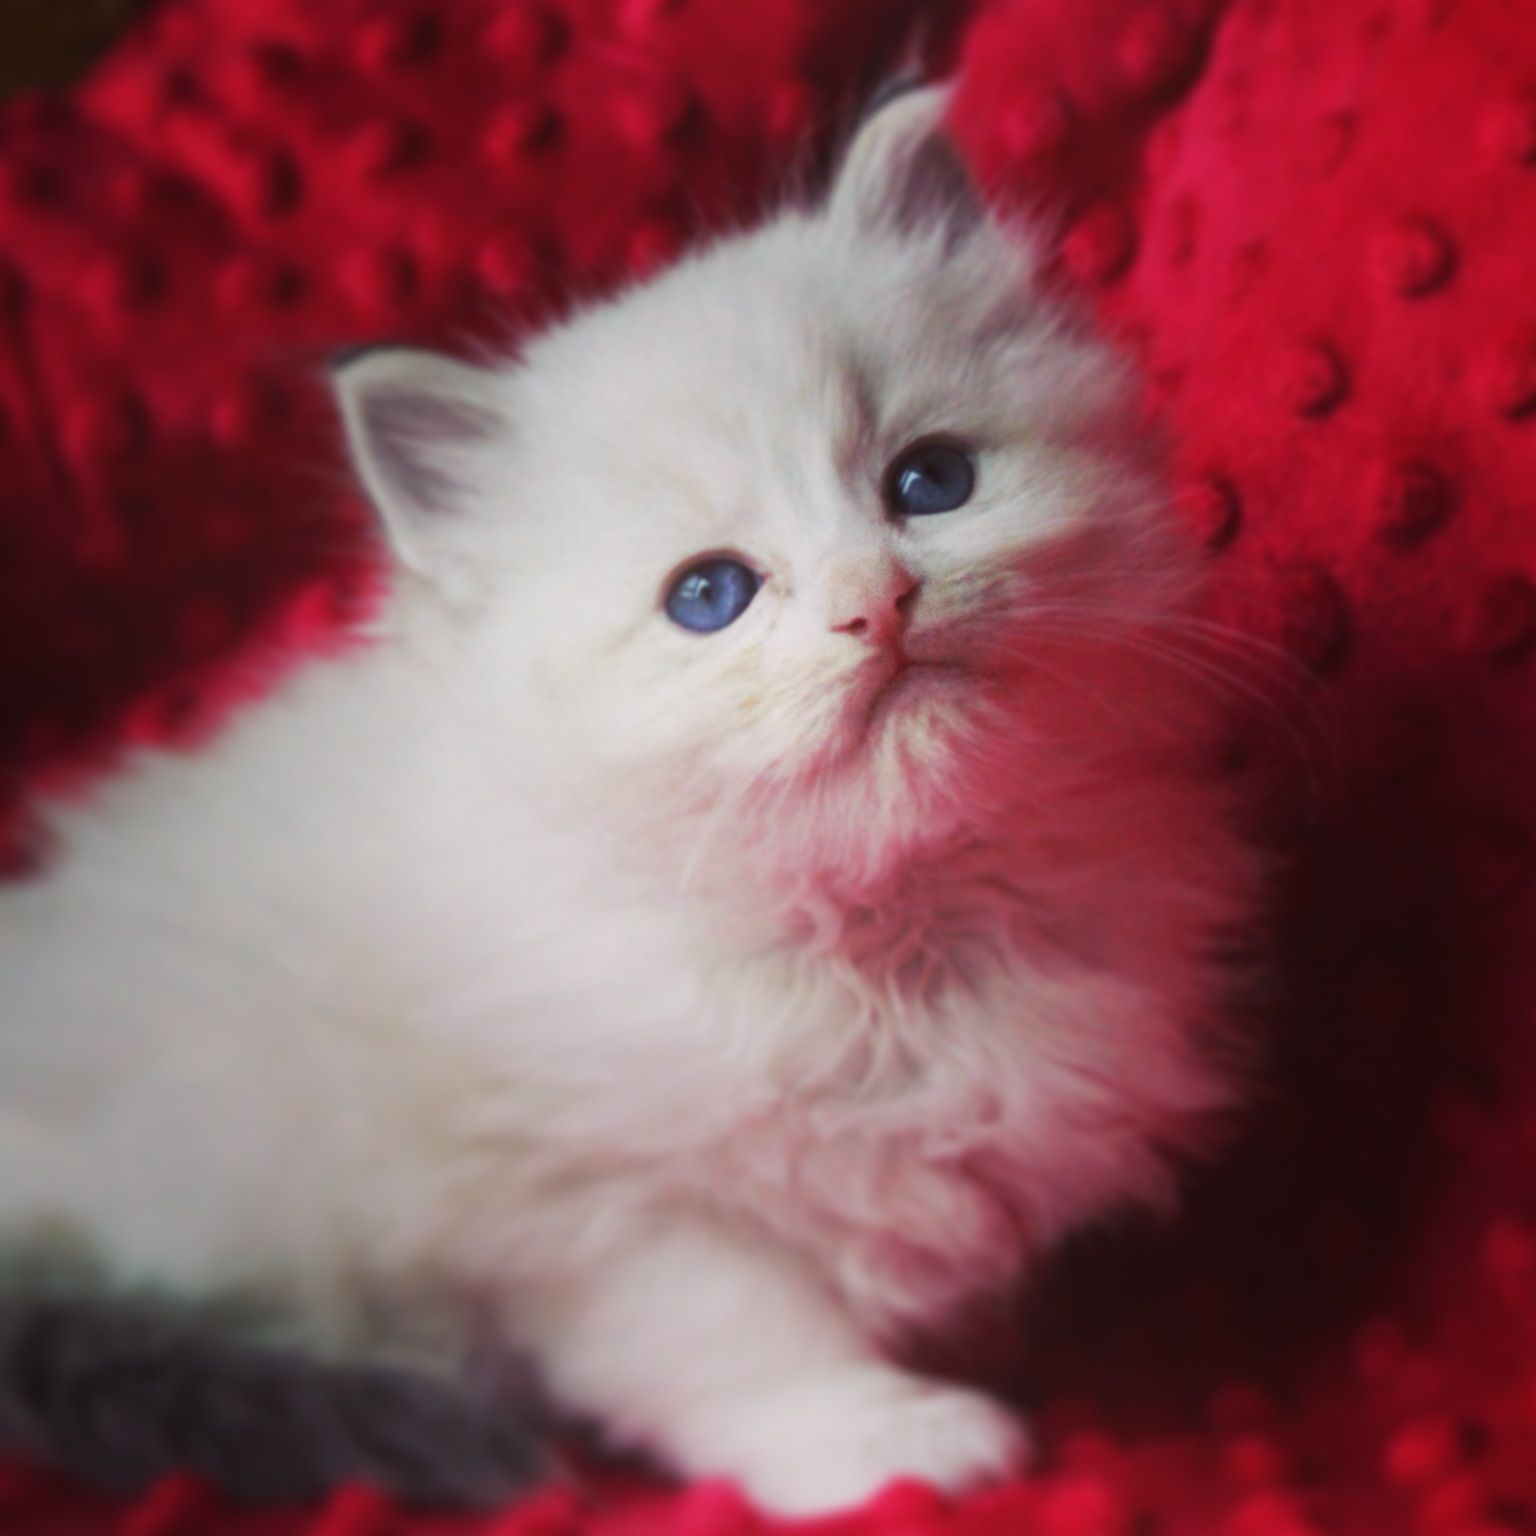 Ragdoll Kitten 5 Weeks Old Seal Lynx Bicolor Miss Sprinkles Ragdoll Kitten Crazy Cats Cute Cats And Dogs Beautiful Cats